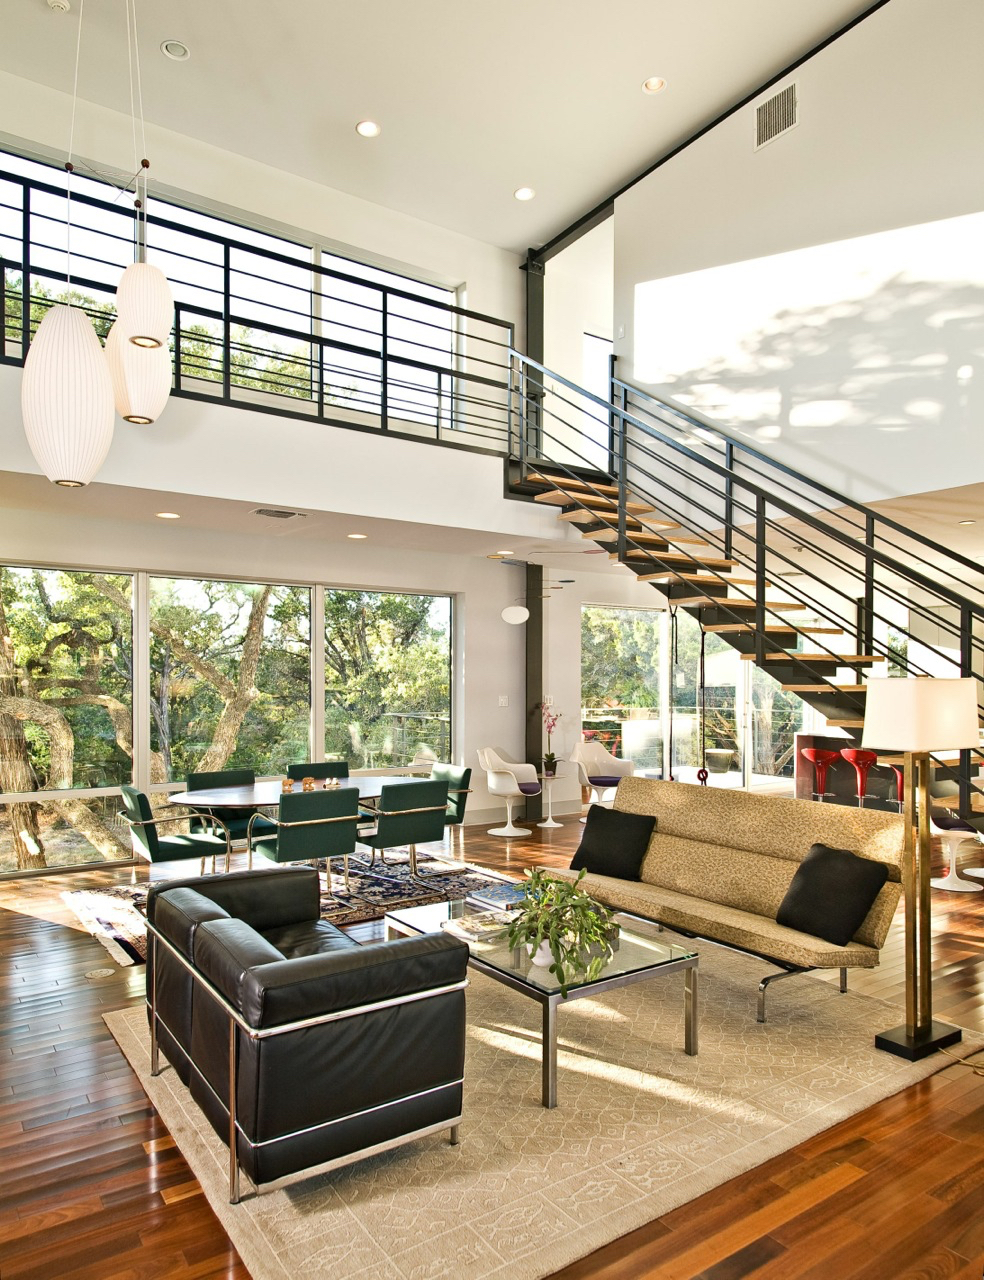 Hill country natural landscape creates wall art thanks to floor to ceiling windows.